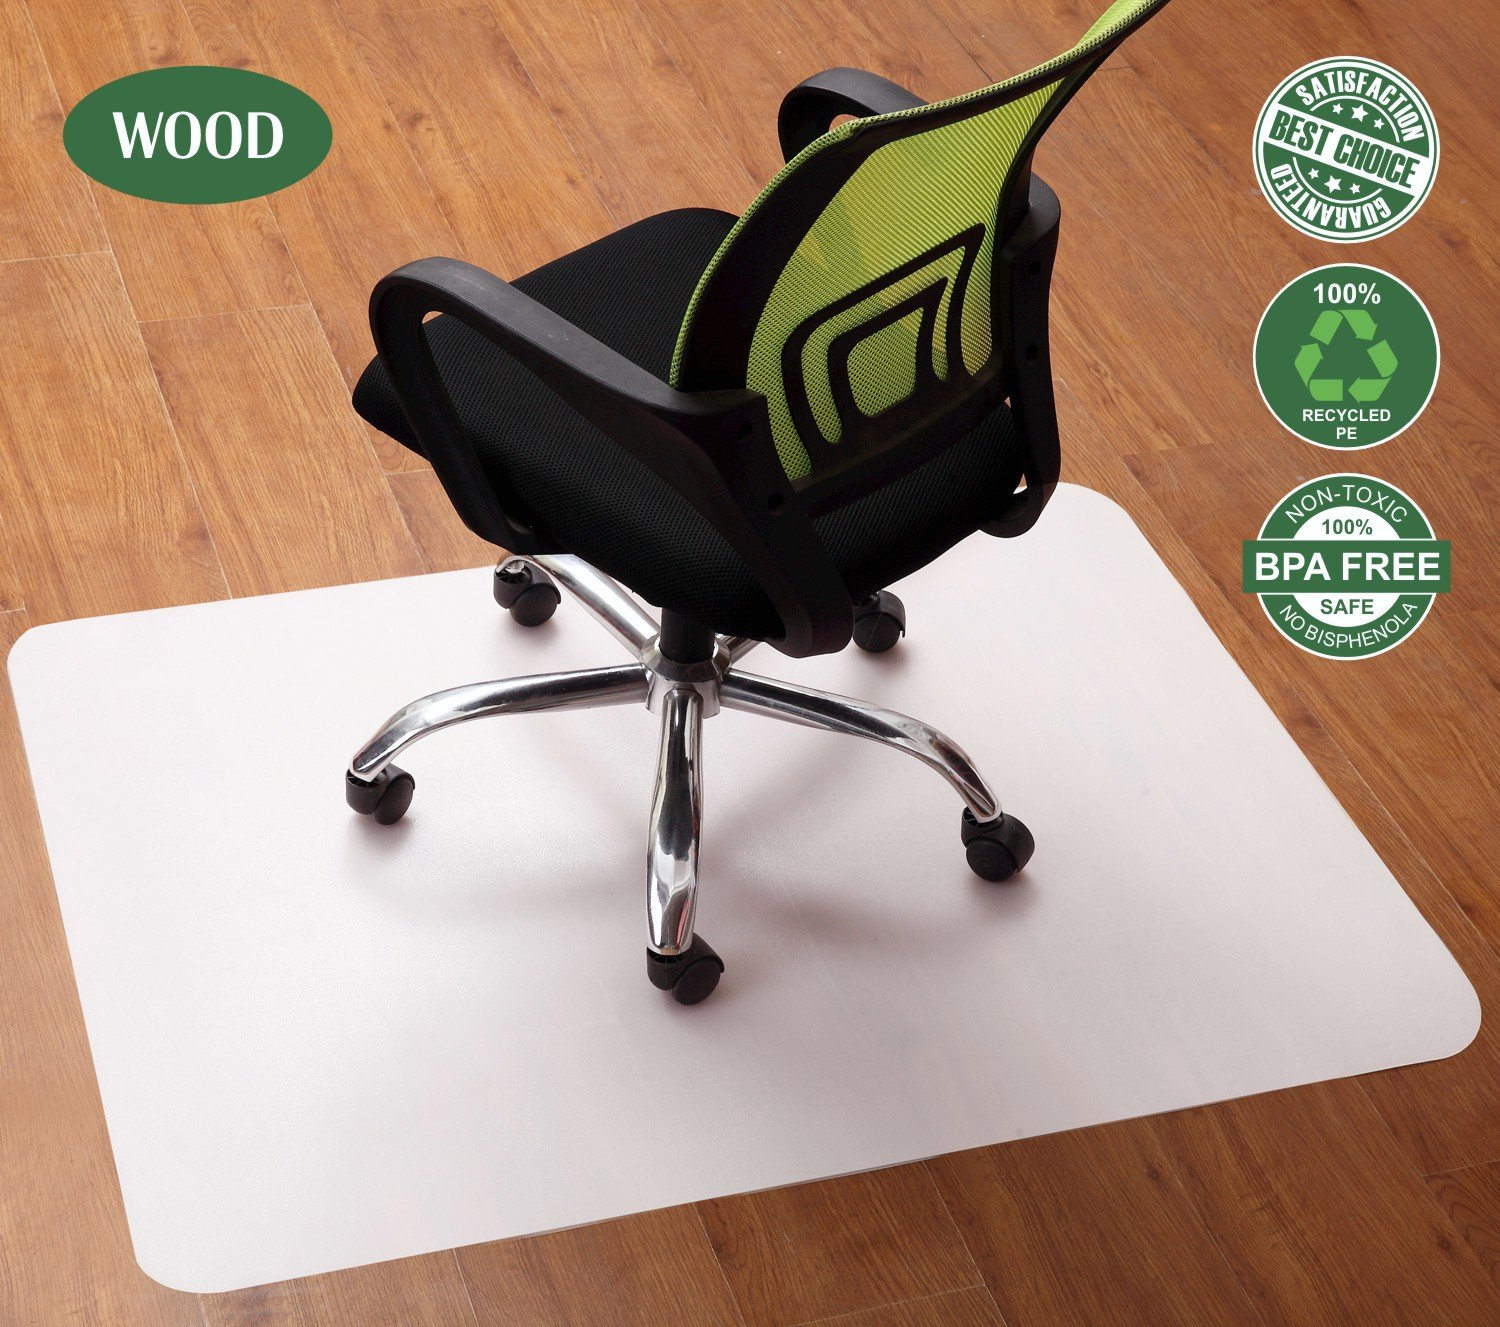 amazon com office chair mat for hardwood floors 35 x 47 inch